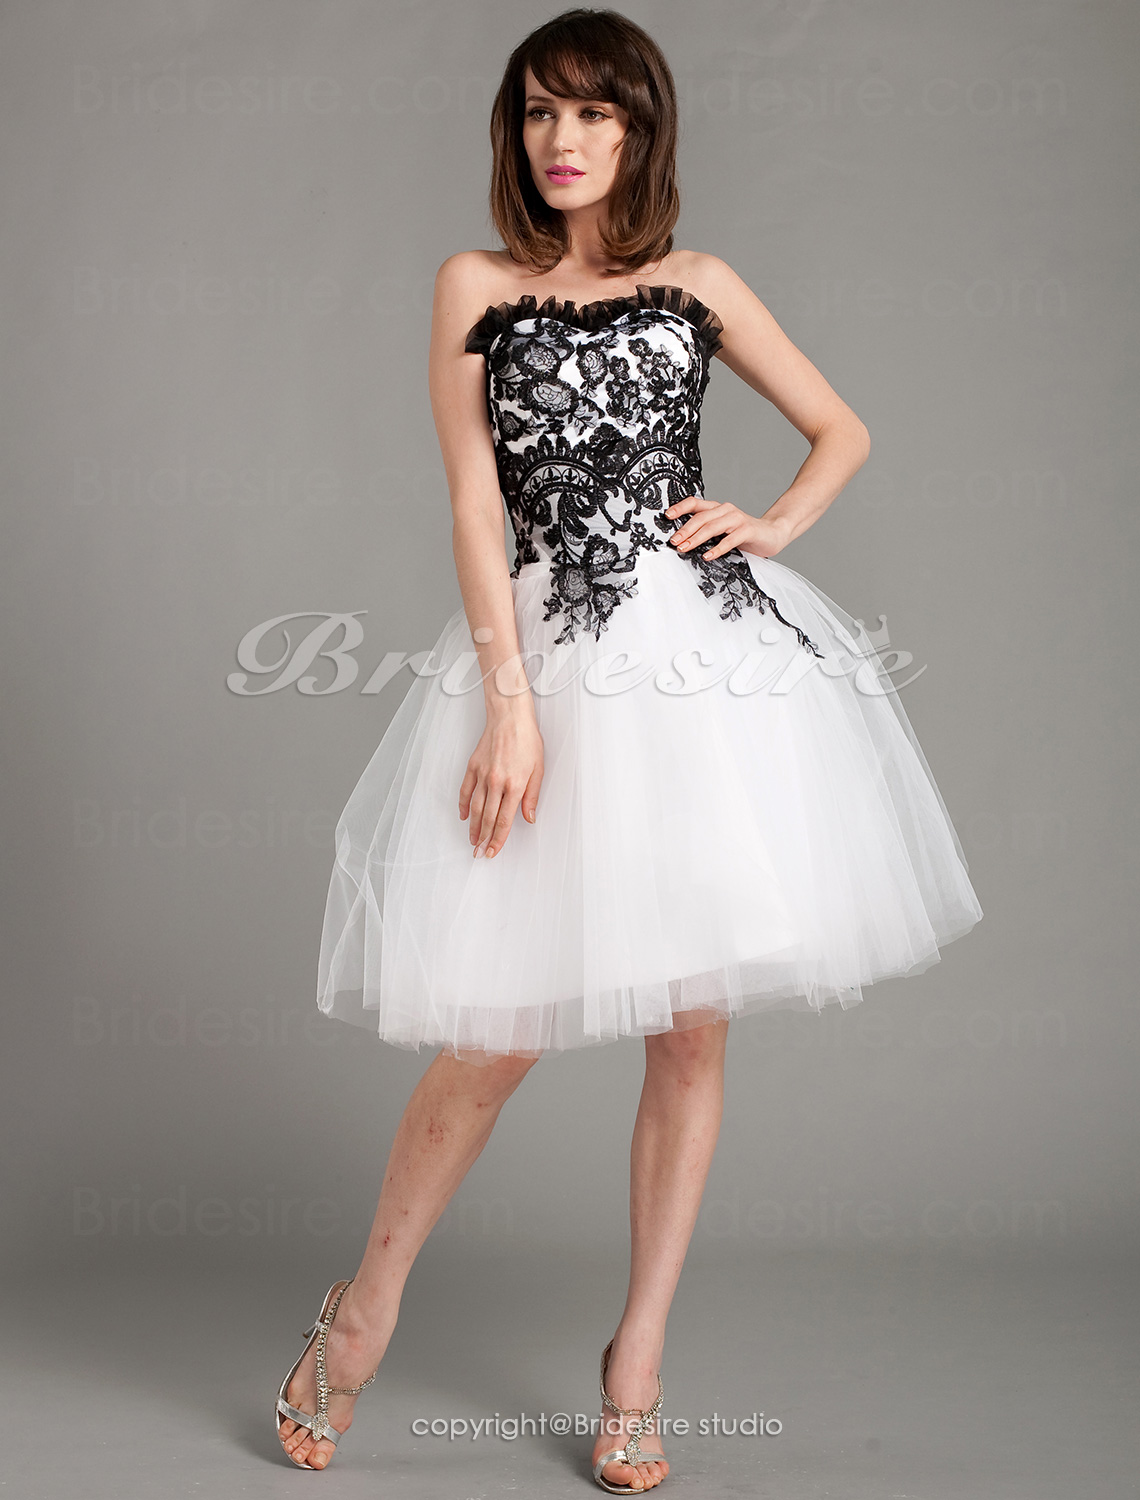 Ball Gown Lace And Tulle Knee-length Sweetheart Cocktail/ Homecoming Dress